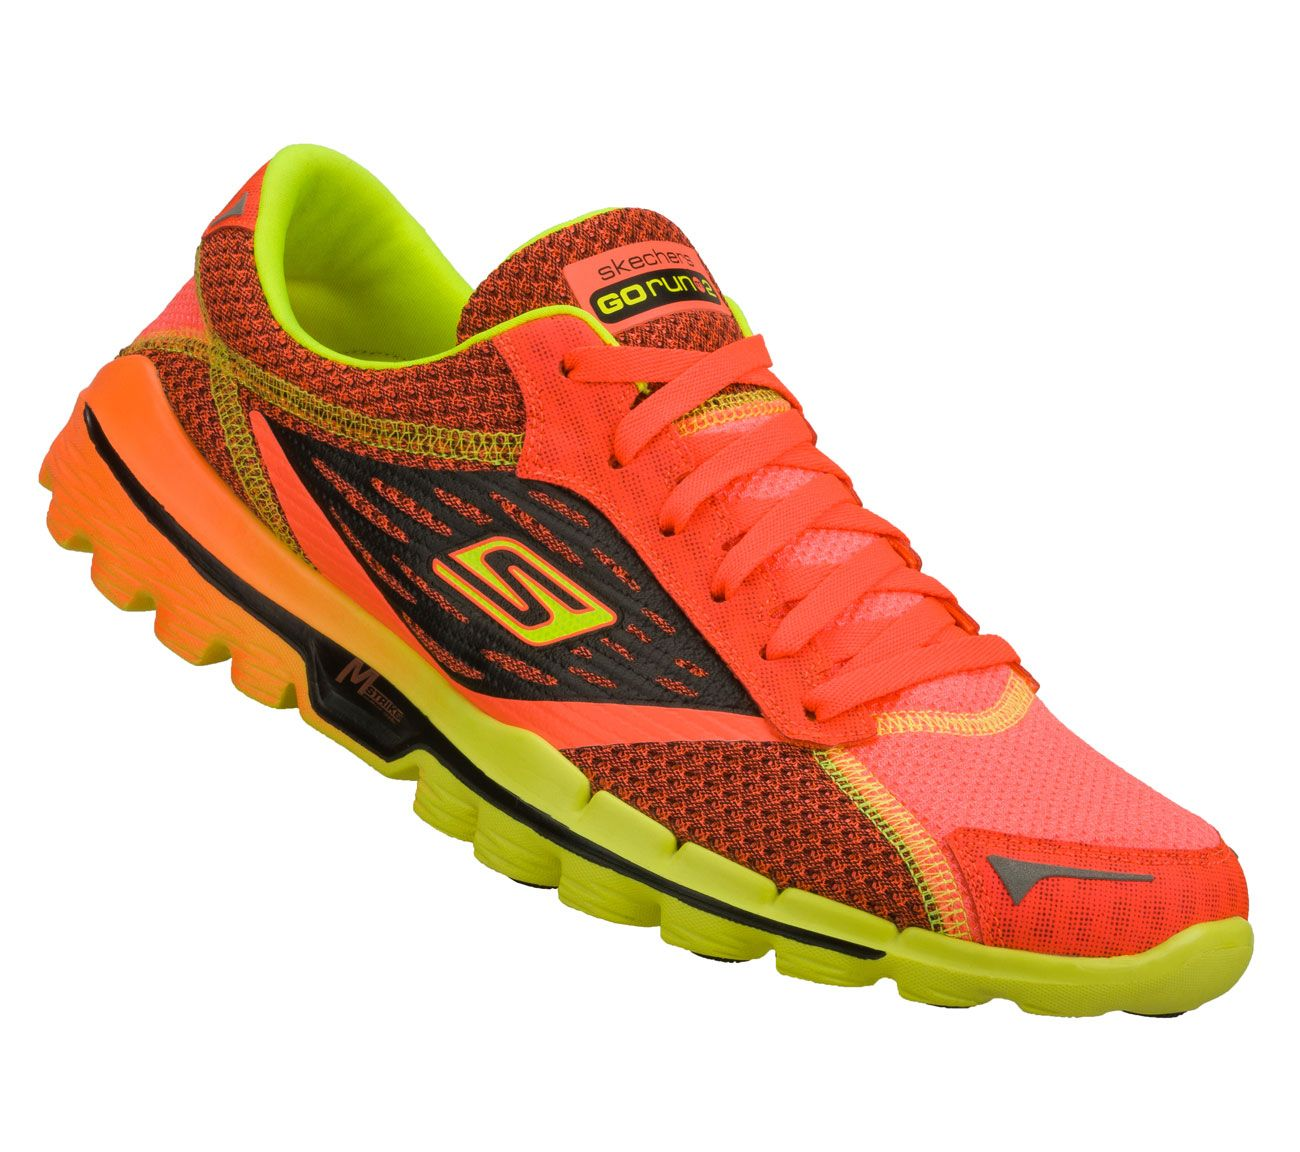 My New Running Shoes The Colour Is Even Better In Real Life